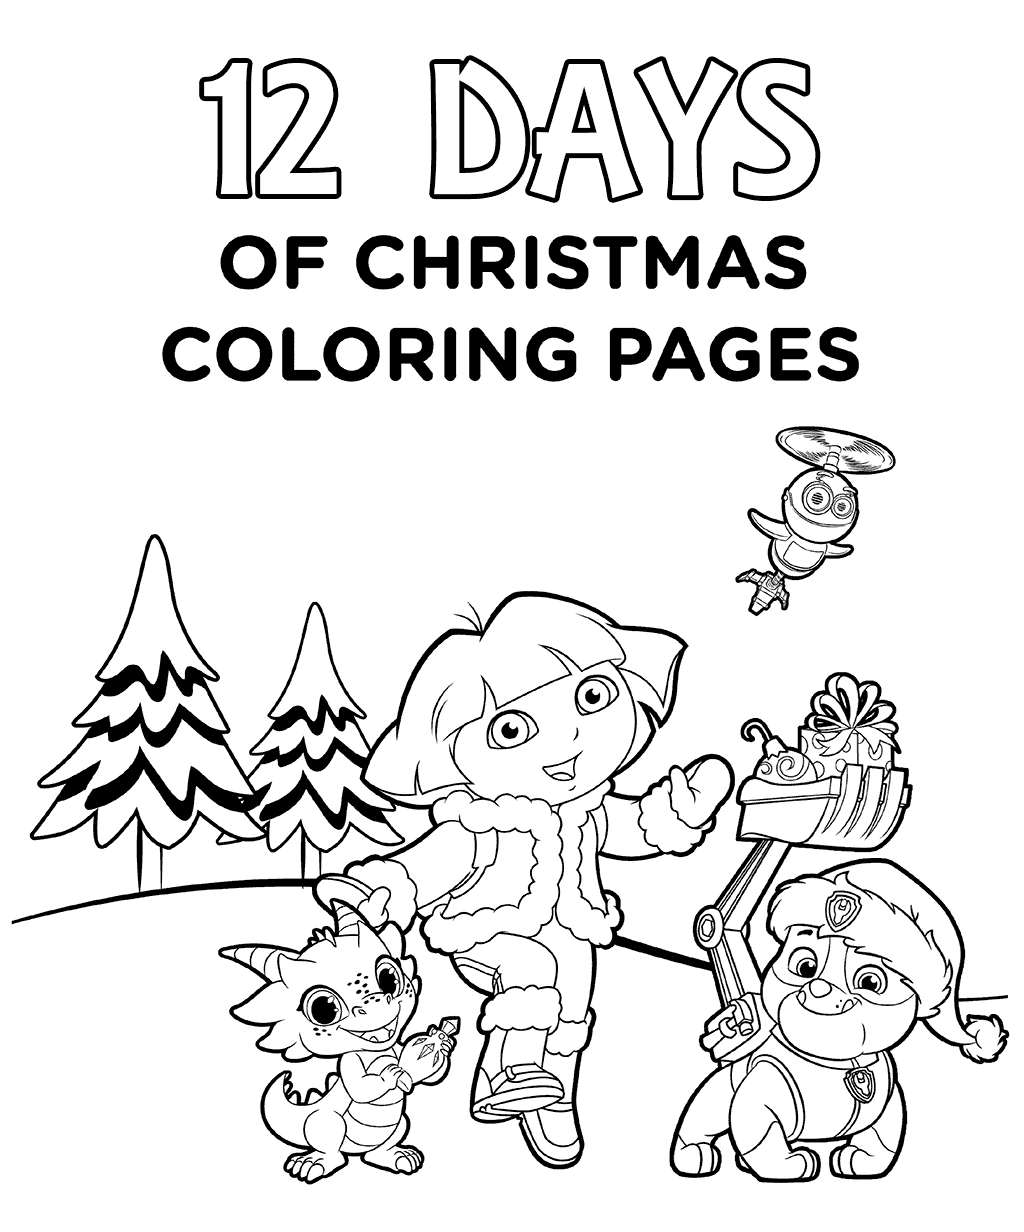 12 Days Of Christmas Coloring Pages Printable At